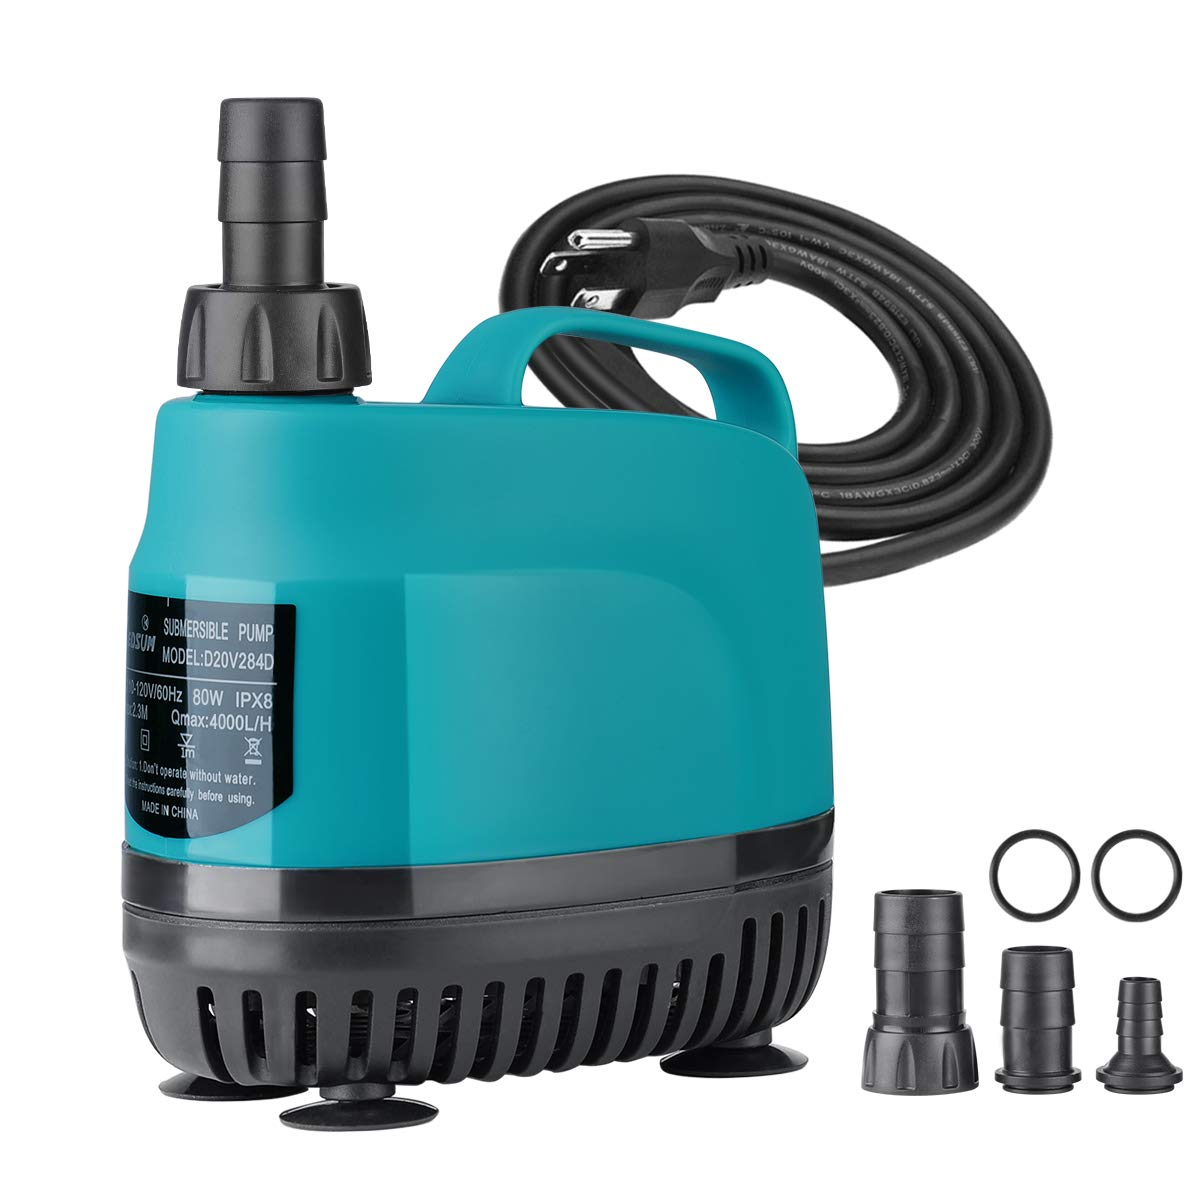 KEDSUM 1060GPH Submersible Water Pump(4000L/H, 80W), Ultra Quiet Submersible Pump with 11.5ft High Lift, Aquarium Pump with 5.9ft Power Cord, 4 Nozzles for Fountain, Pond, Fish Tank, Hydroponics by KEDSUM